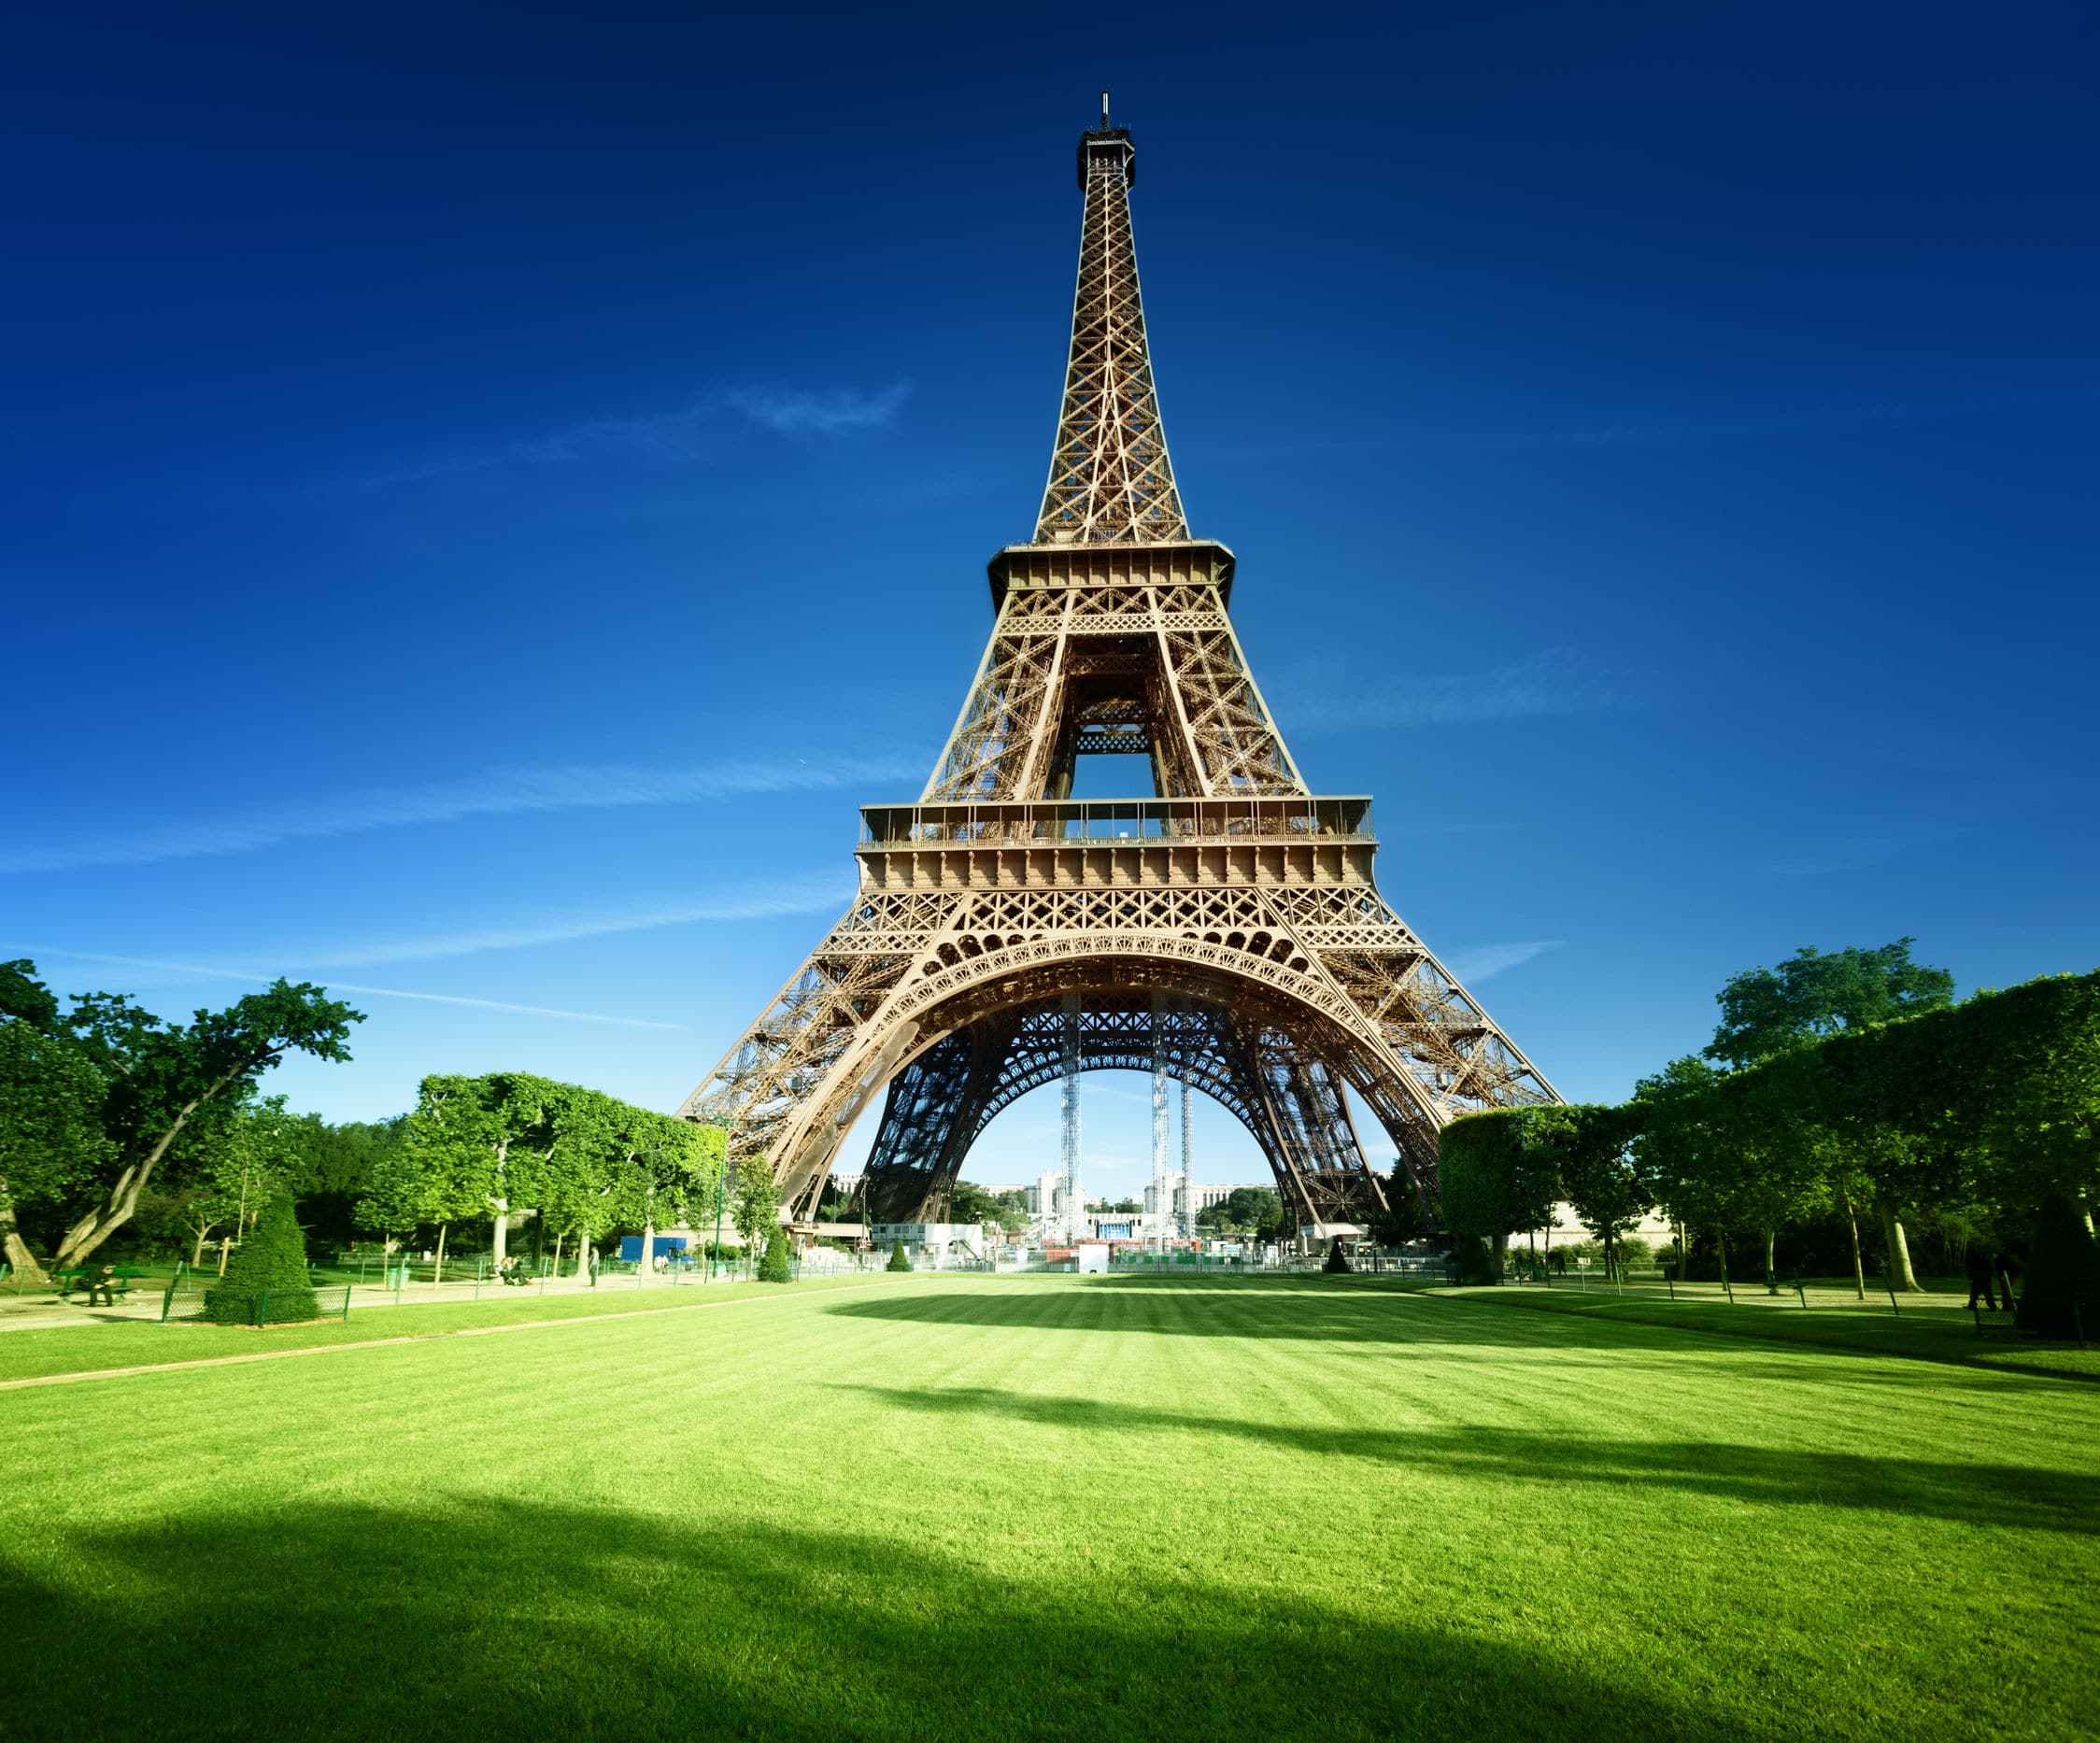 Eiffel tower in Paris picnic